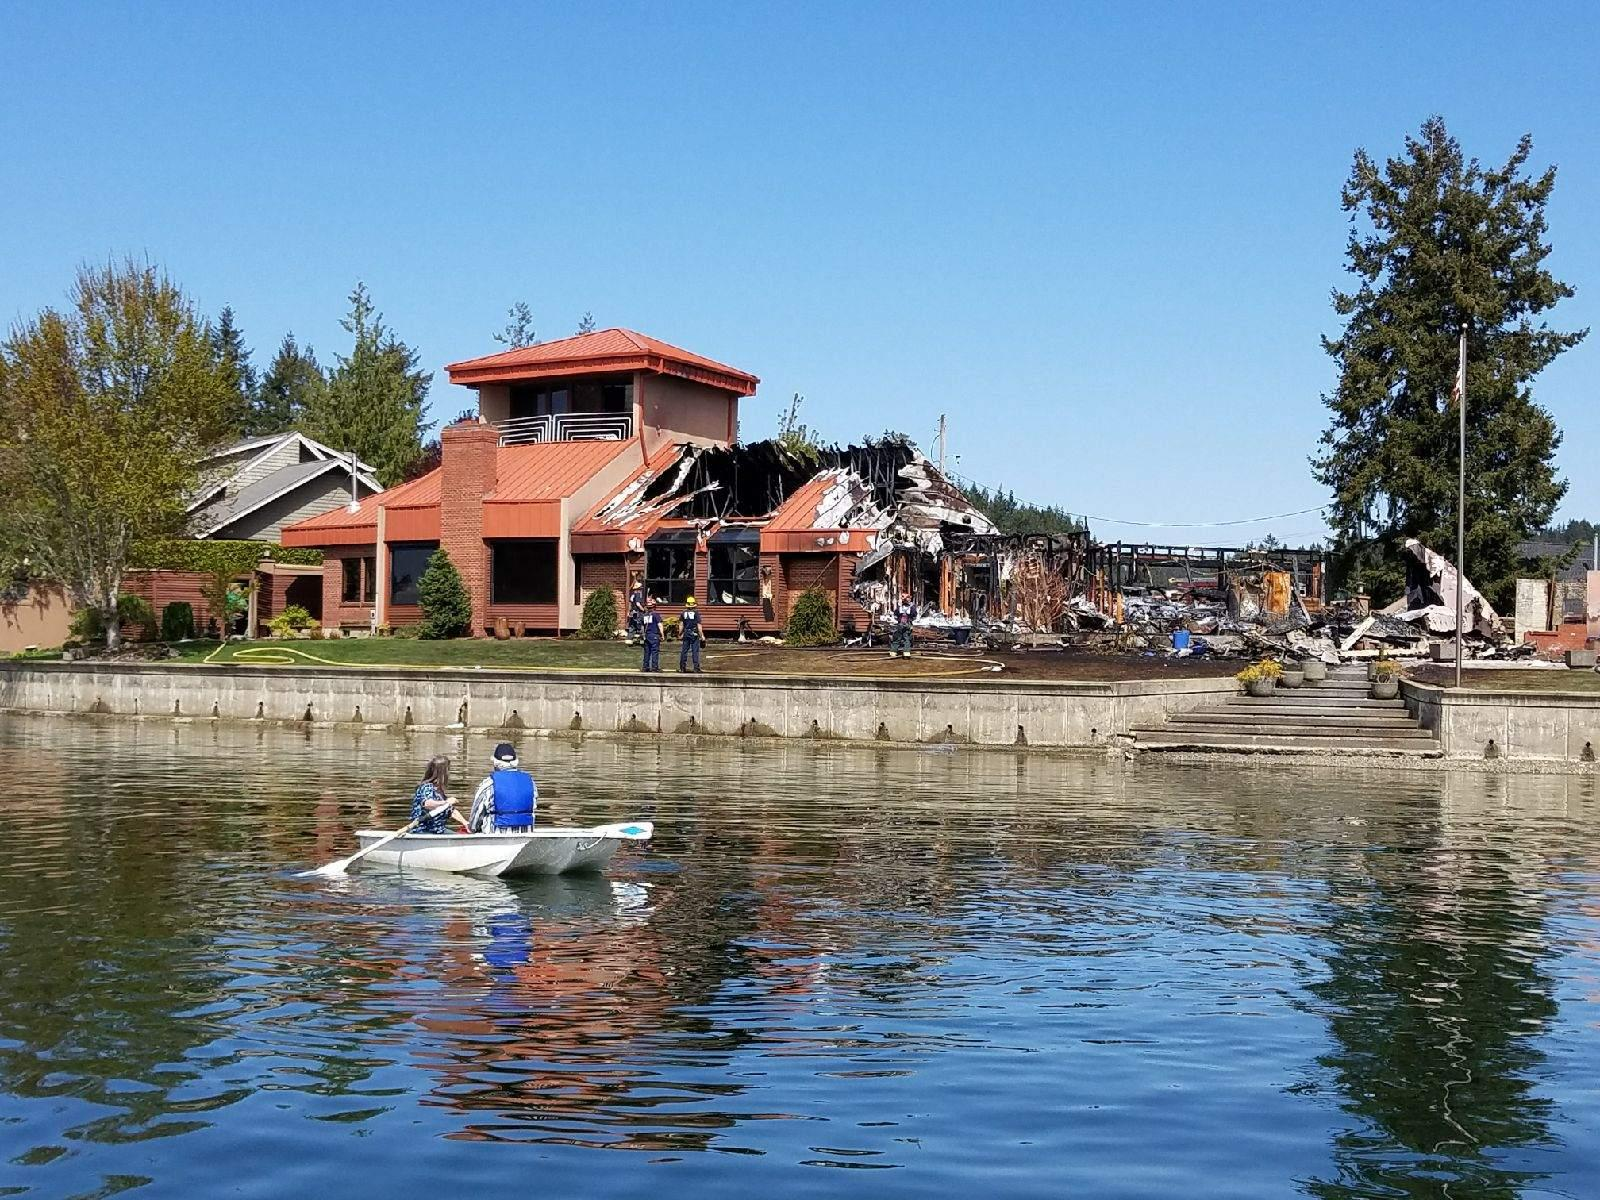 Aftermath of a Gig Harbor home gutted by a fire ( Photo courtesy Gregg May){&amp;nbsp;}<p></p>